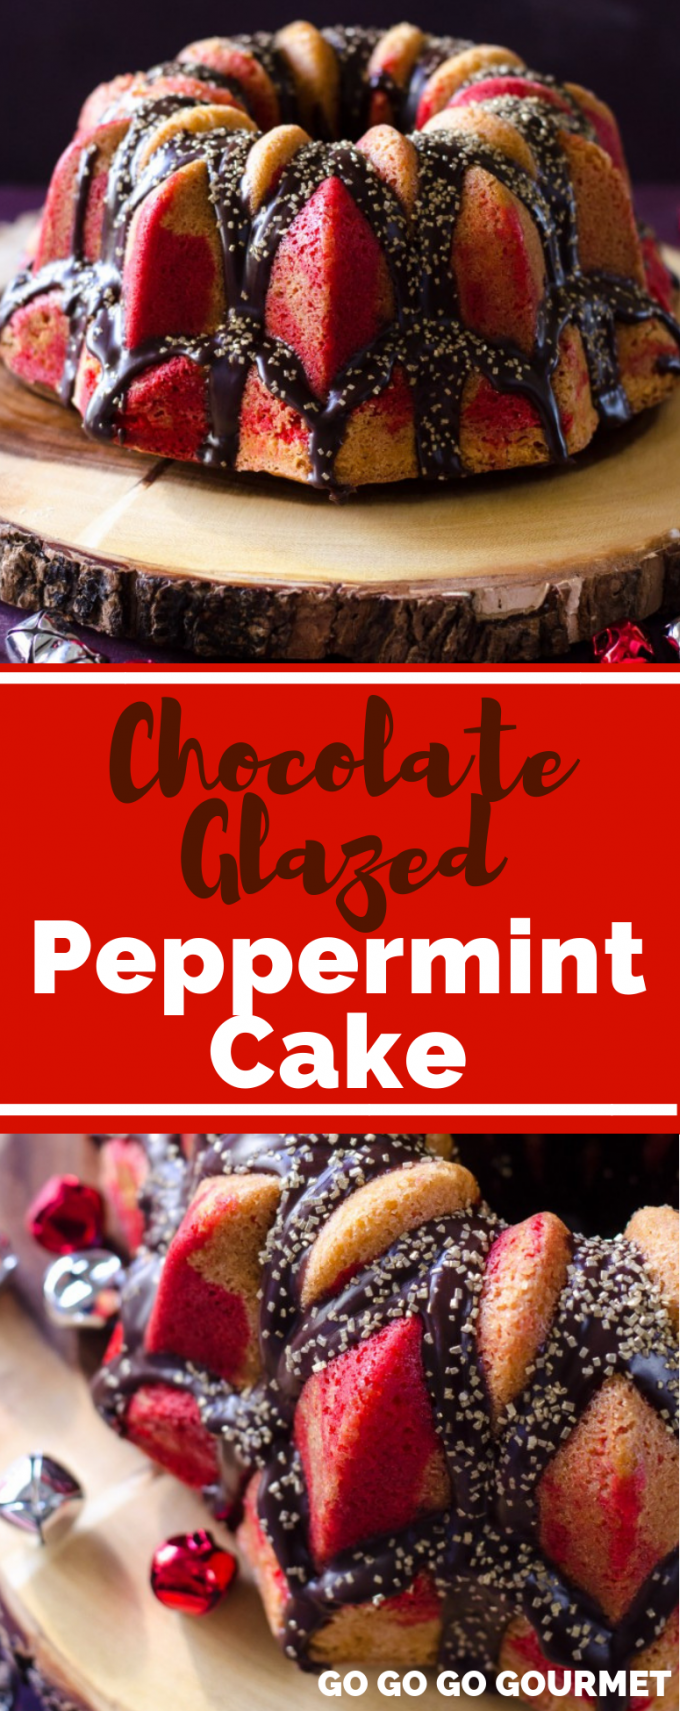 This easy Chocolate Glazed Peppermint Cake recipe is the perfect cake for the holiday! Your Christmas desserts won't be complete without this red and white showstopper! #gogogogourmet #chocolateglazedpeppermintcake #peppermintchristmascake #easychristmasdesserts via @gogogogourmet